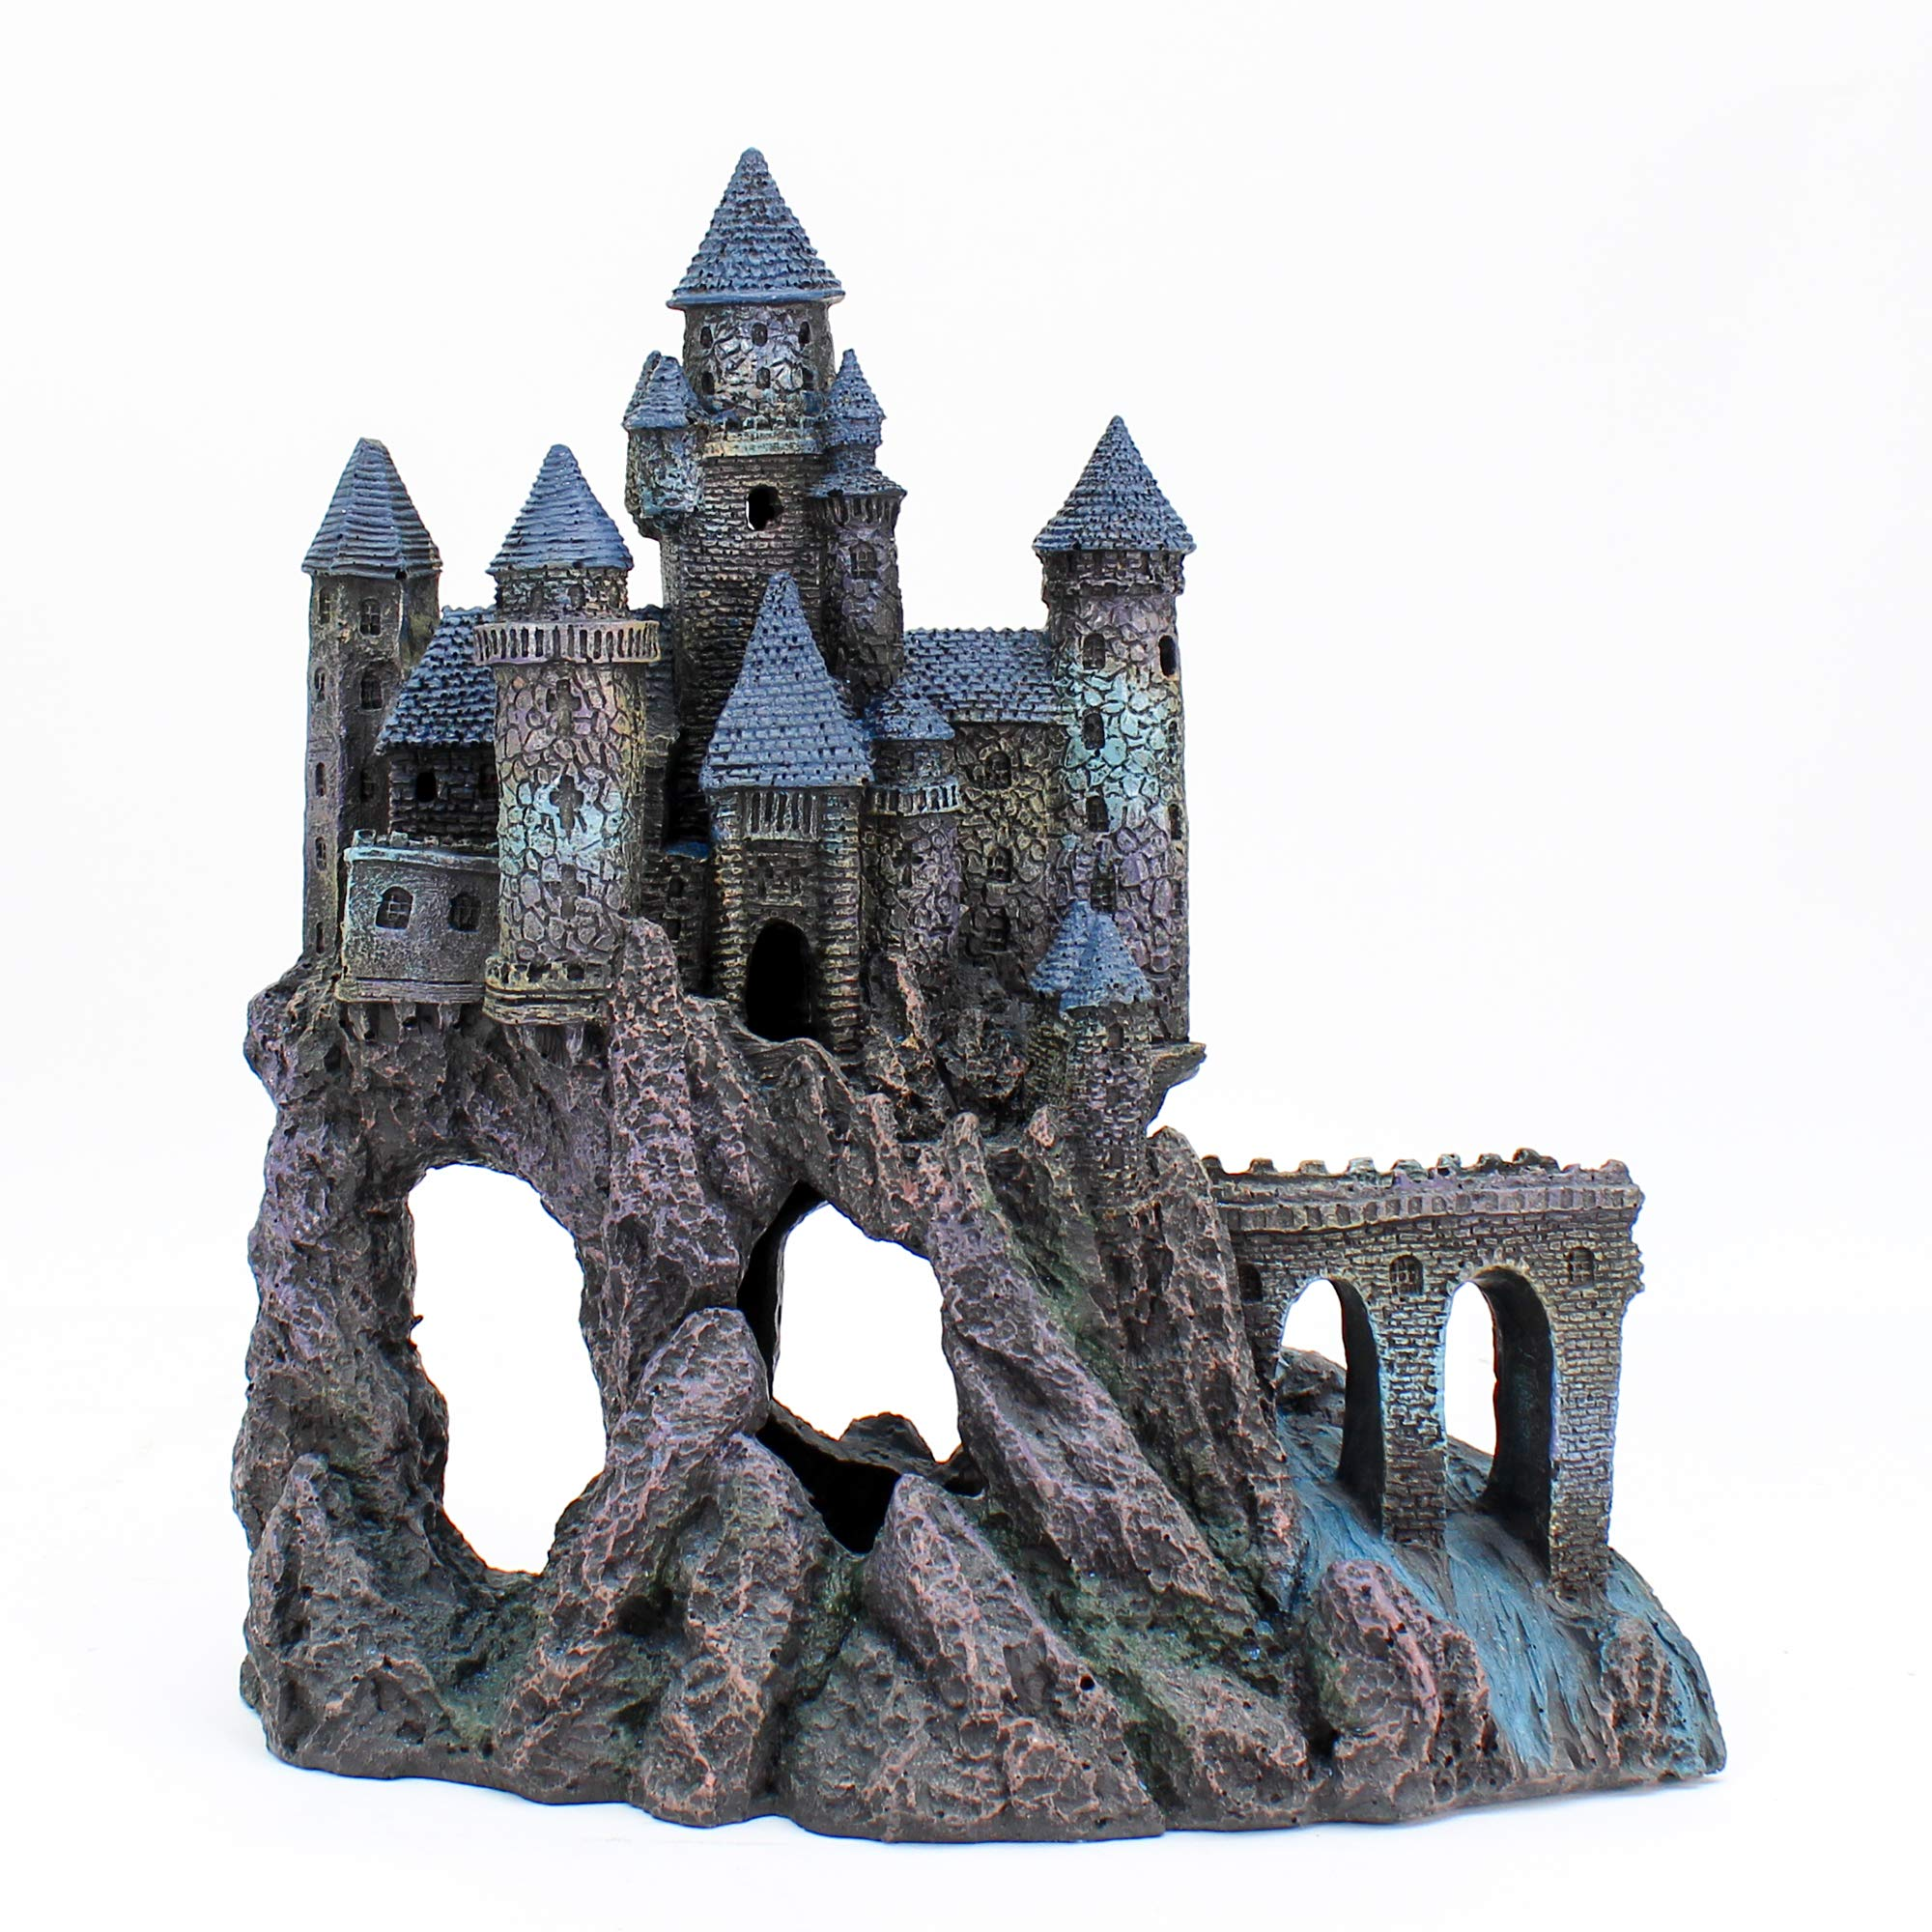 Penn Plax Castle Aquarium Decoration Hand Painted with Realistic Details Over 14.5 Inches High Part A by Penn Plax